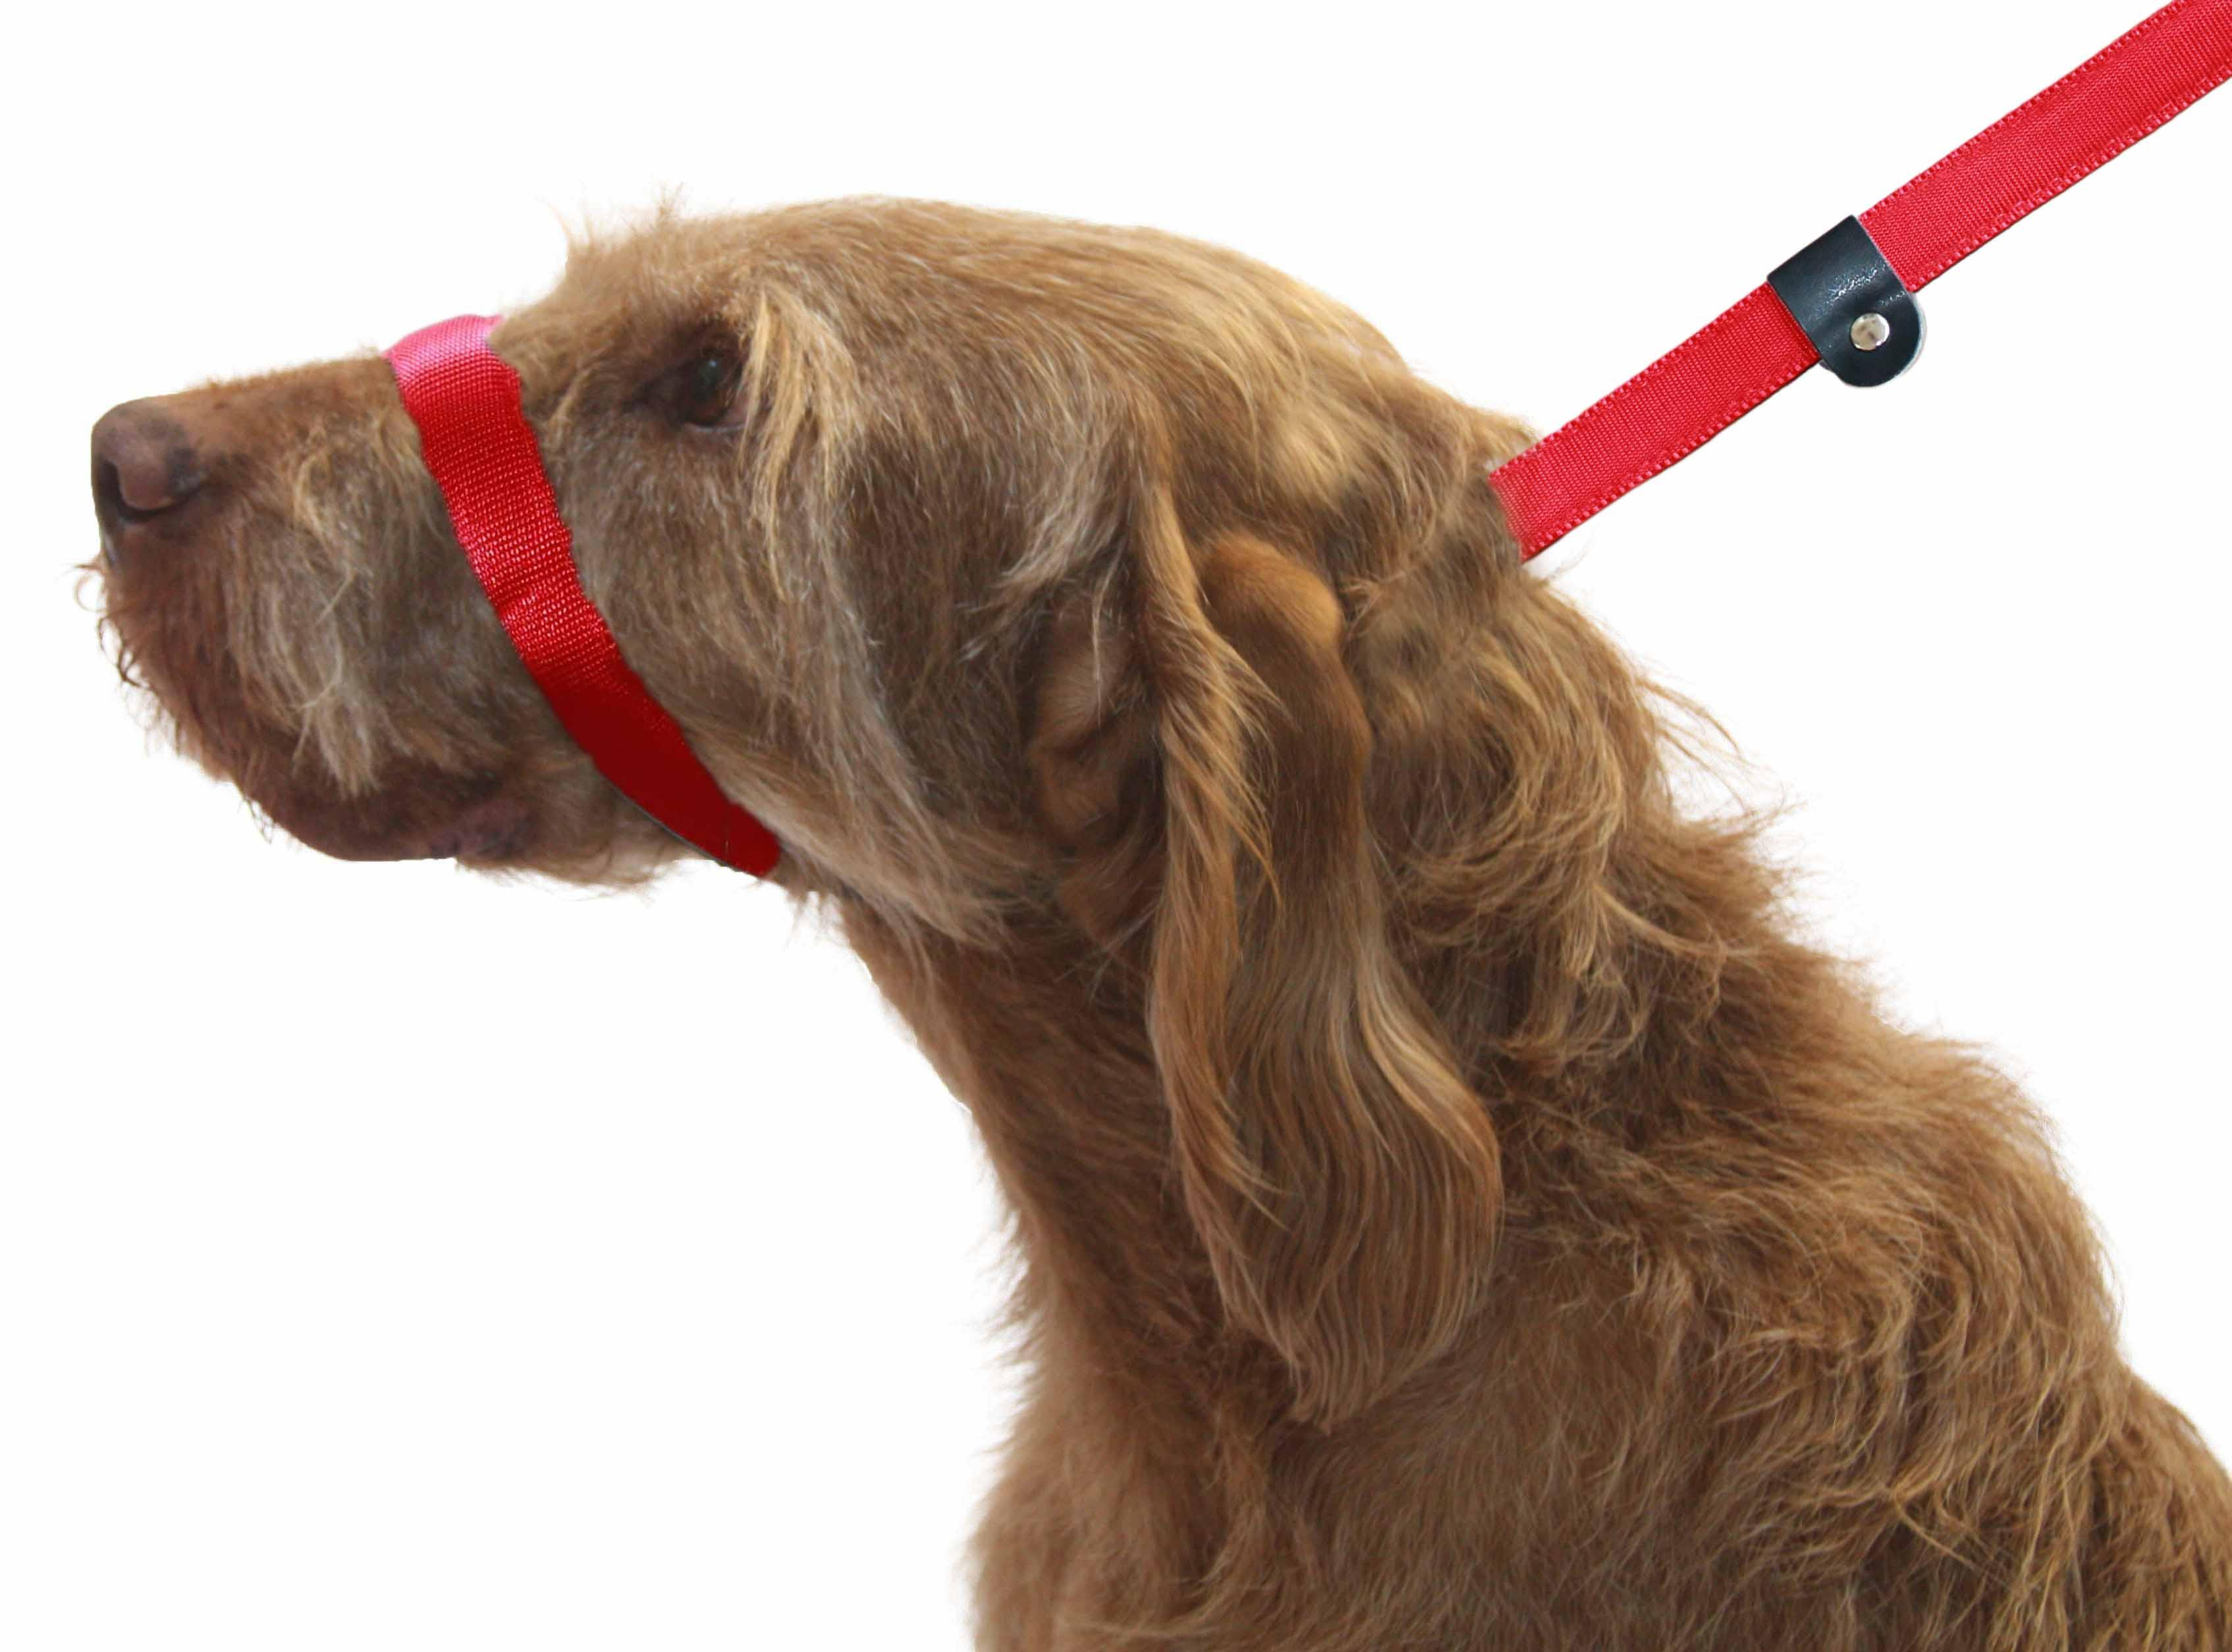 How To Stop Dog Pulling On Lead Uk